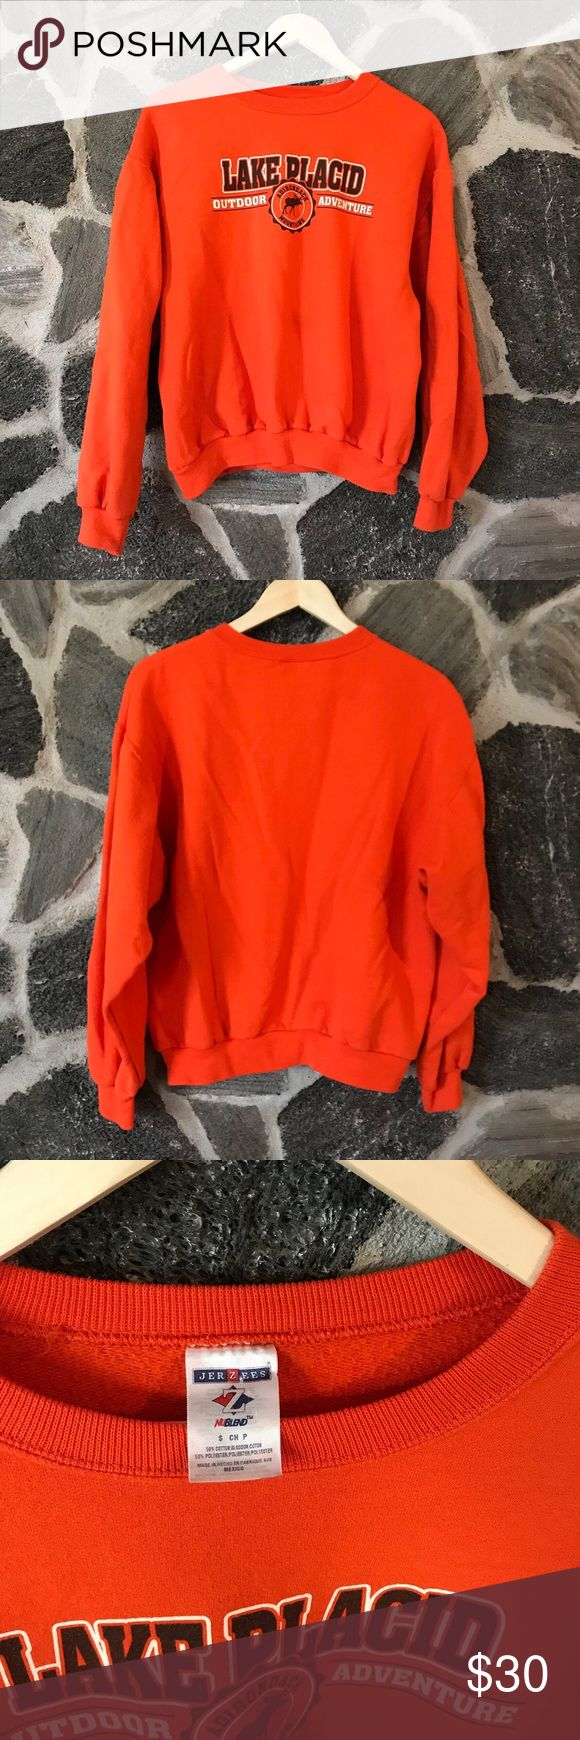 """▪️v i n t a g e 